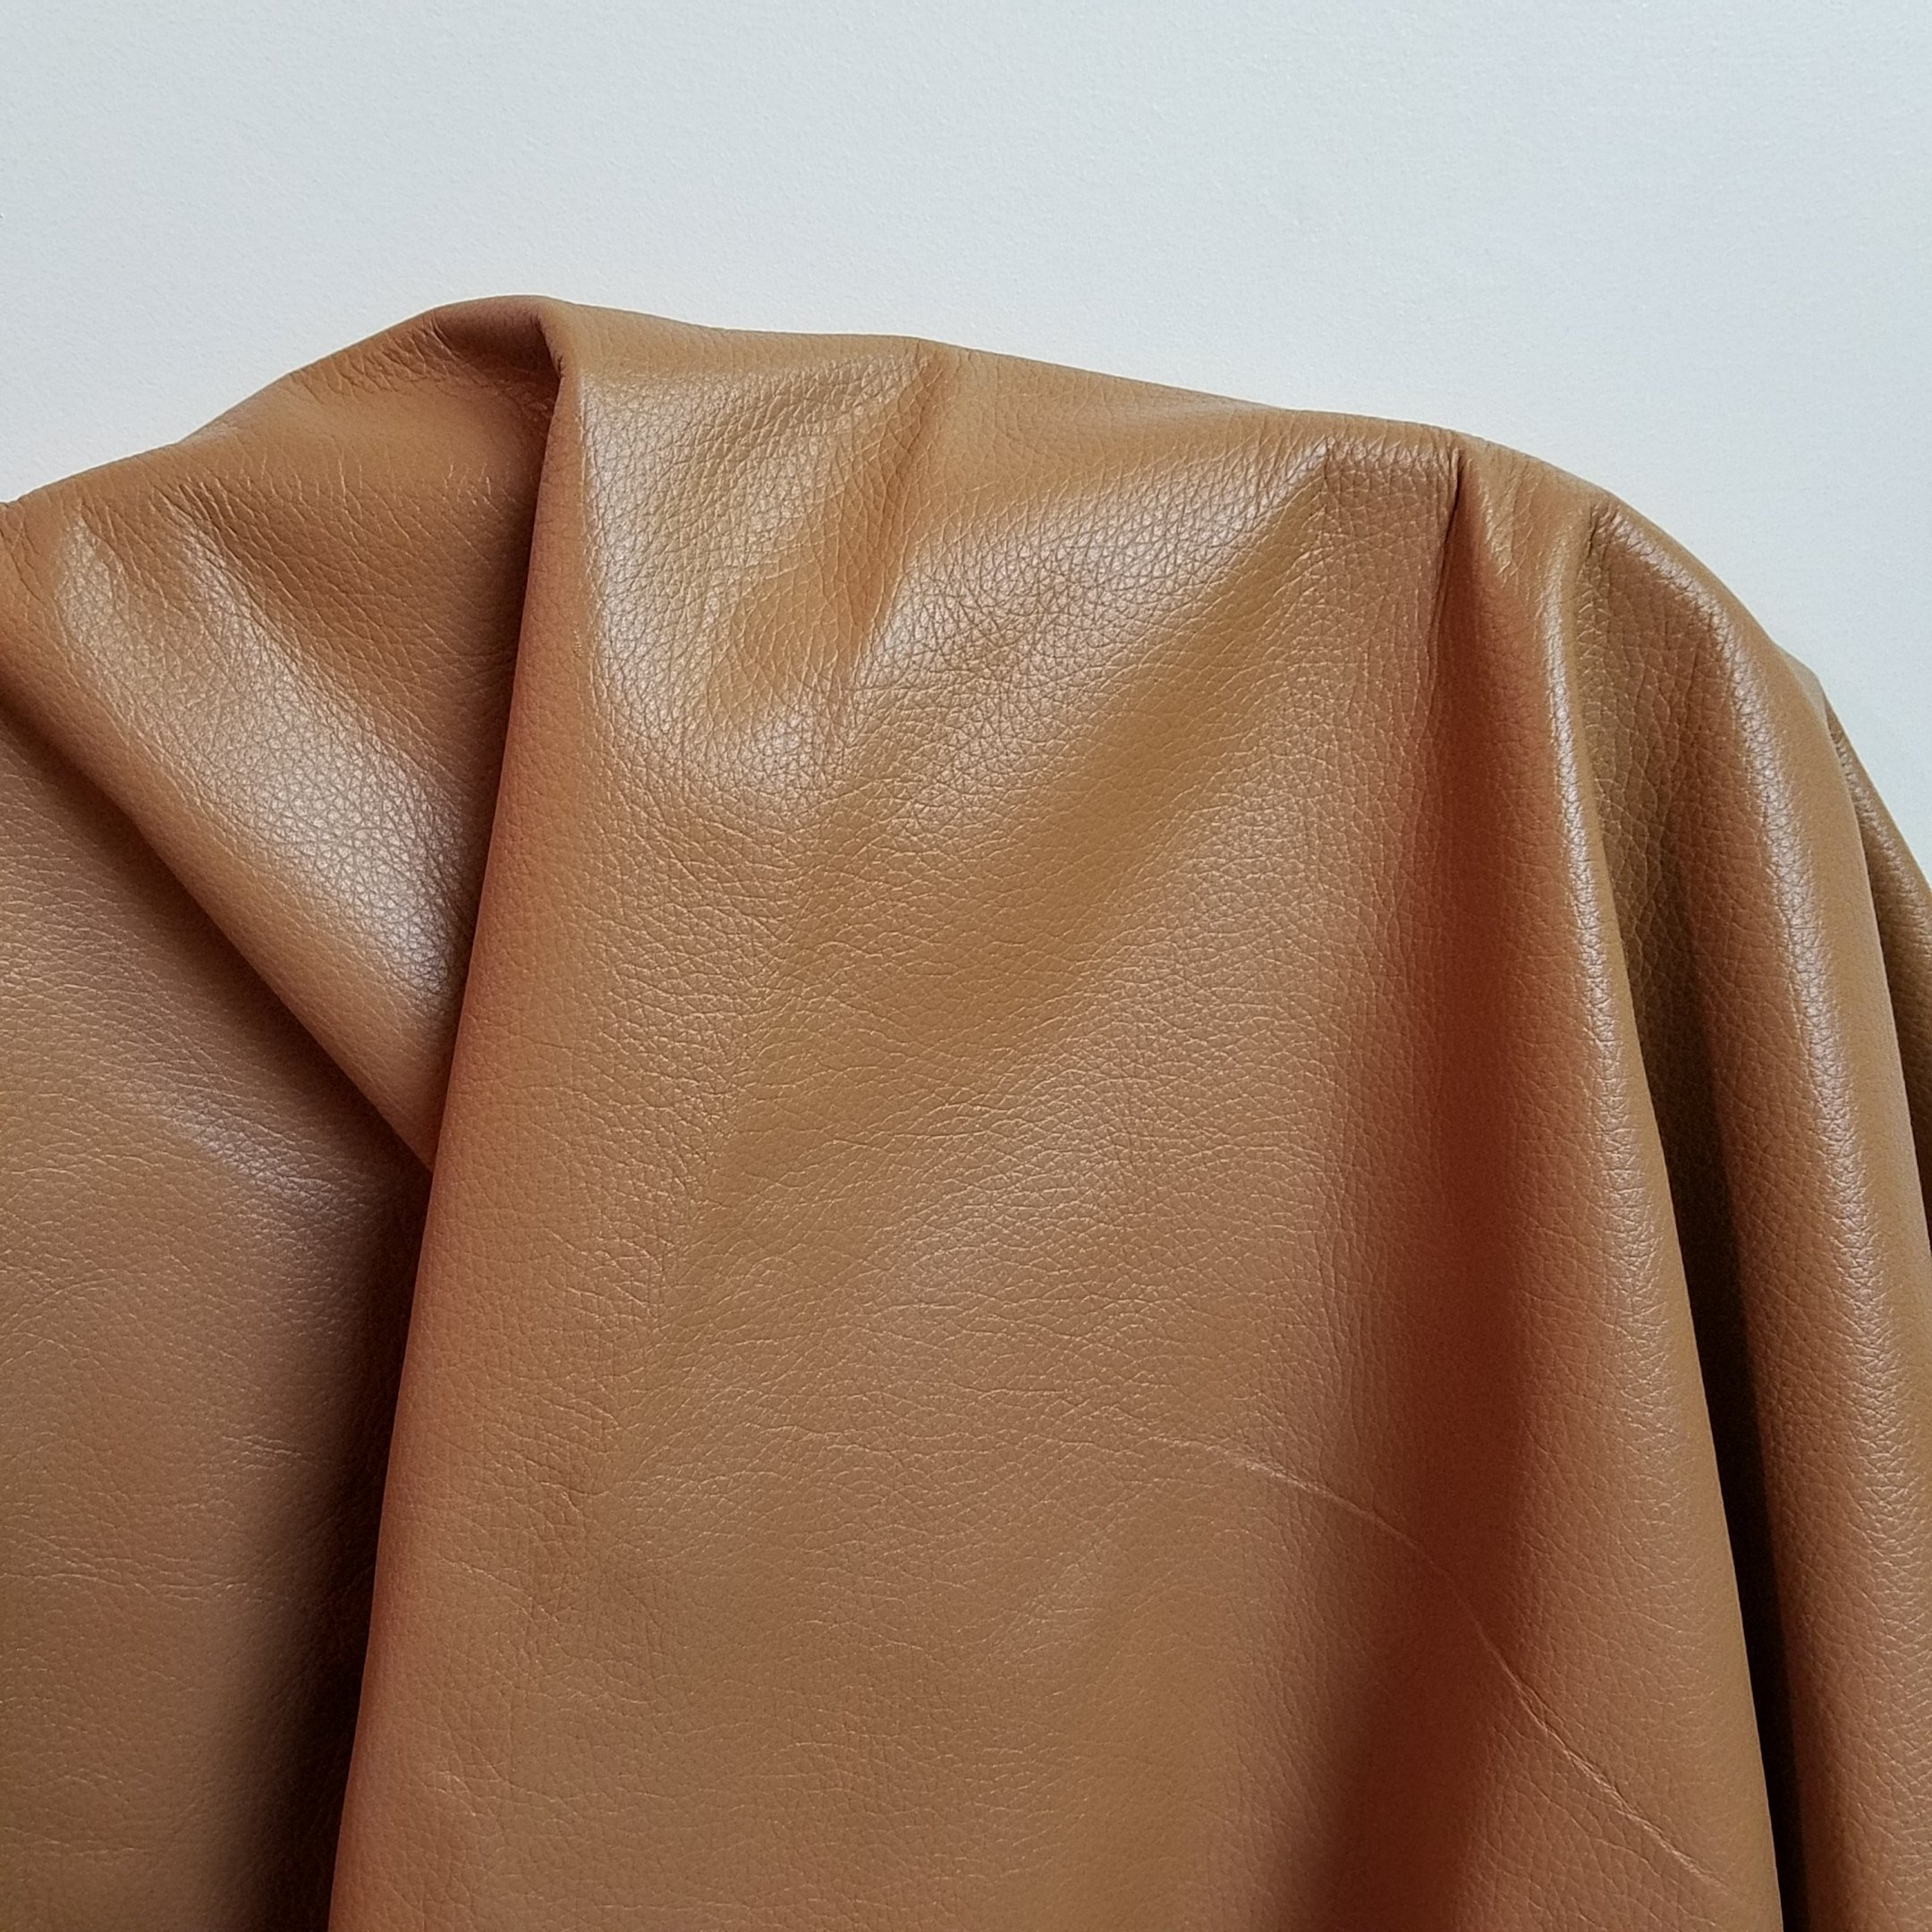 NAT Leathers Camel or Light Tan Weekender 2.5-3.0 oz Pebble grain Soft Upholstery Chap Cowhide Genuine Leather Hide Skin 17 to 22 Square Feet (over 30''x 50'')